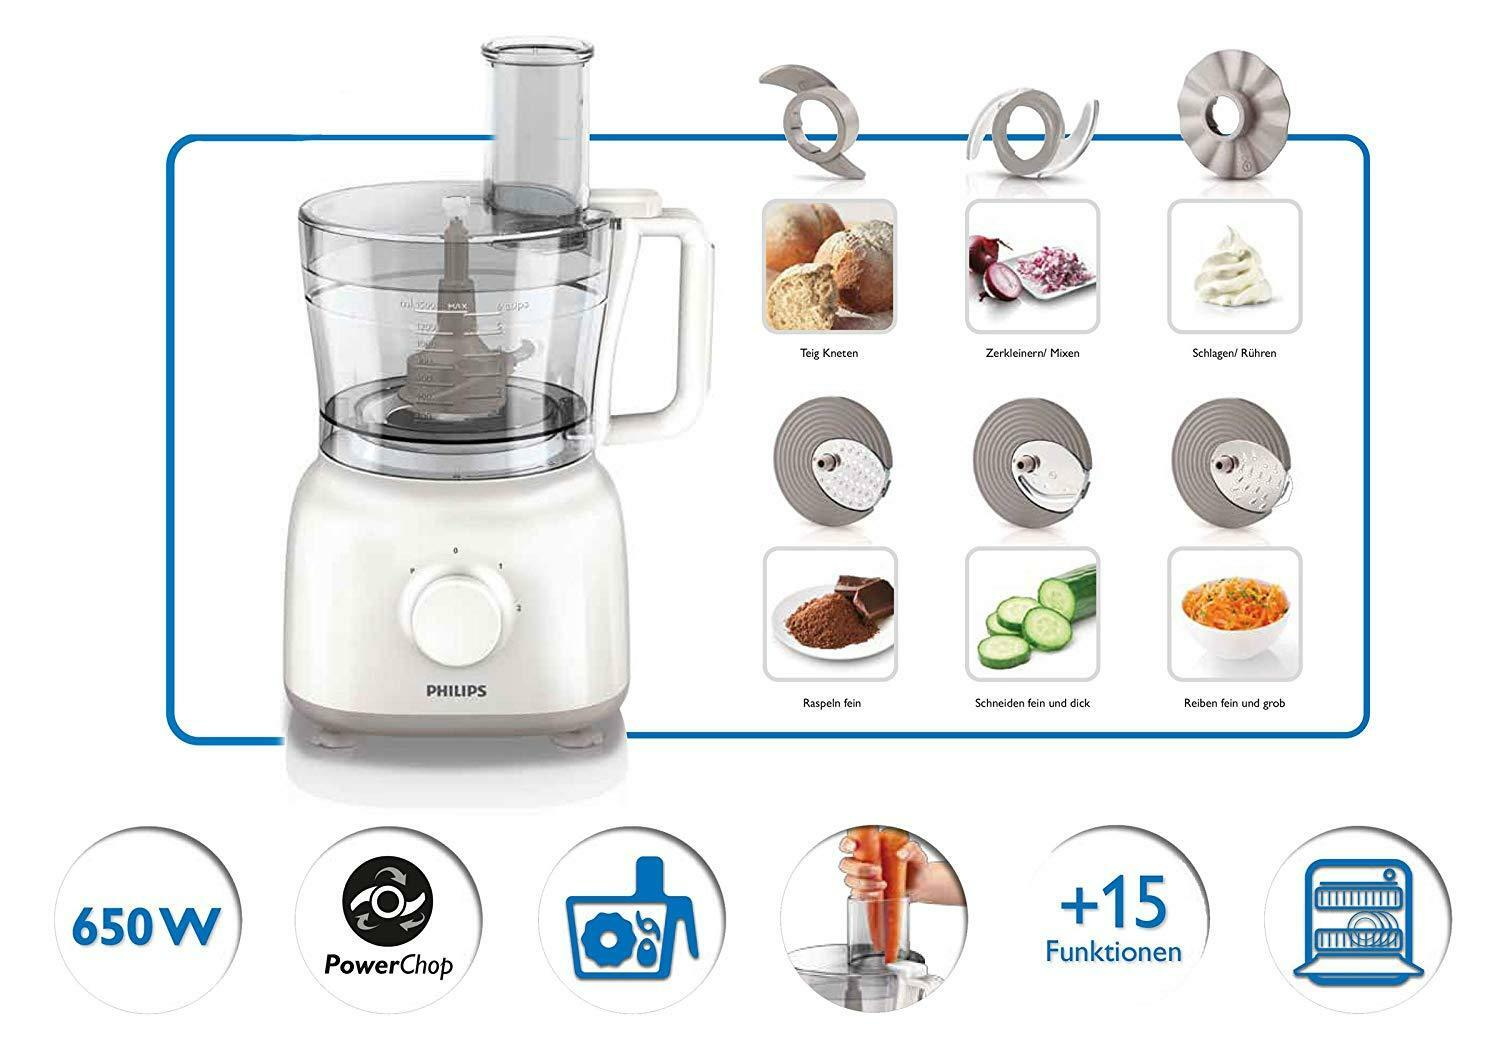 Food Processor Daily Collection Philips HR7627 02 650 W 2.1 L Genuine blanc Co